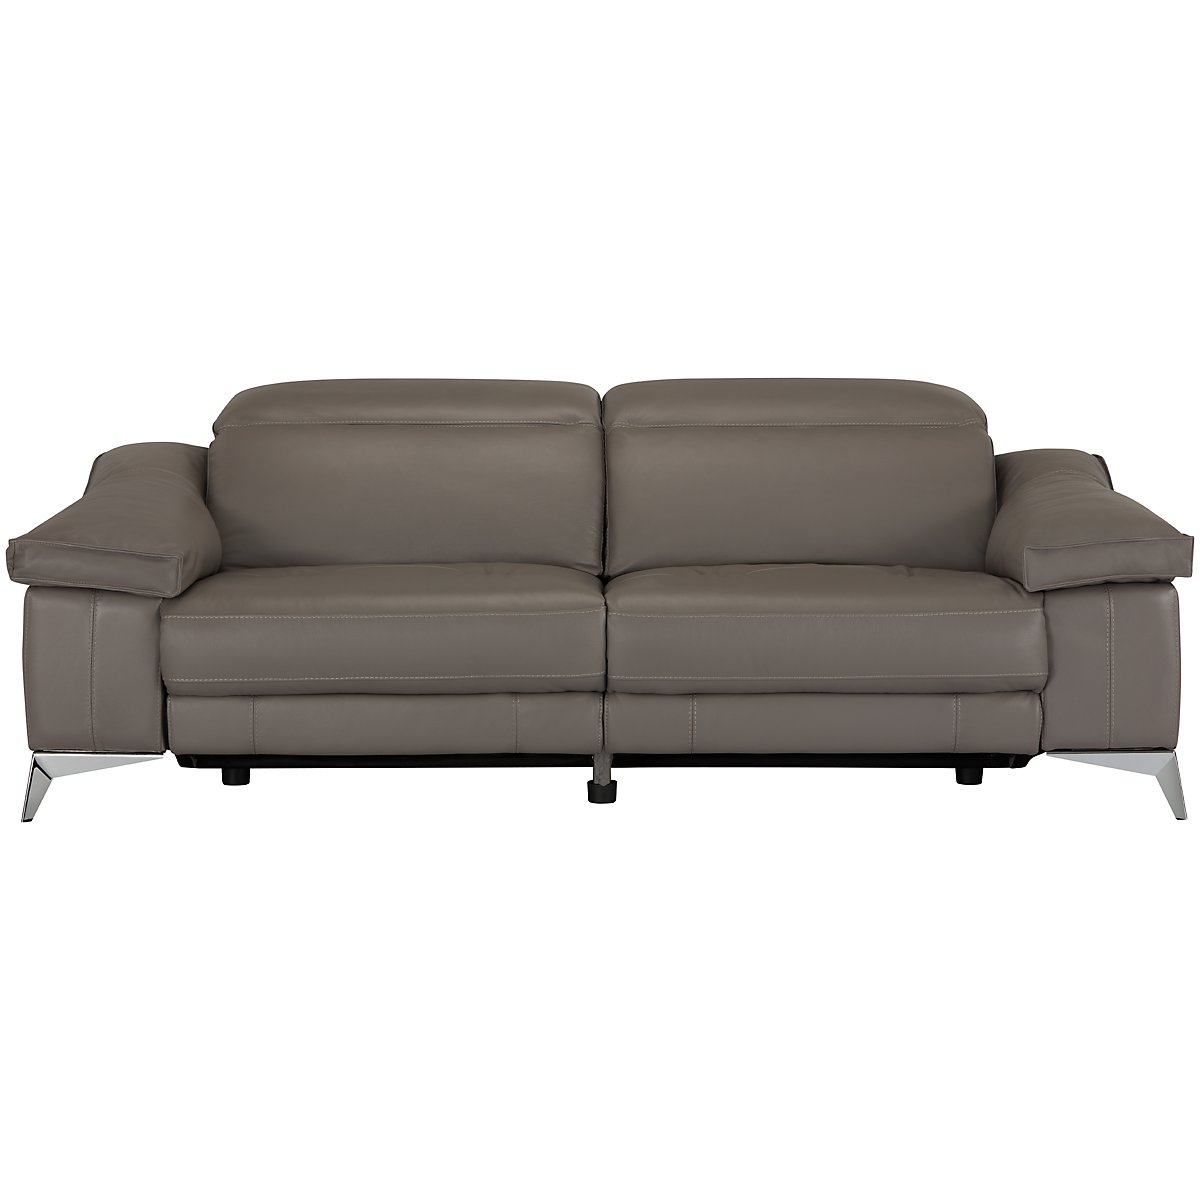 Leather sofas 0 finance for Sofa 0 interest free credit